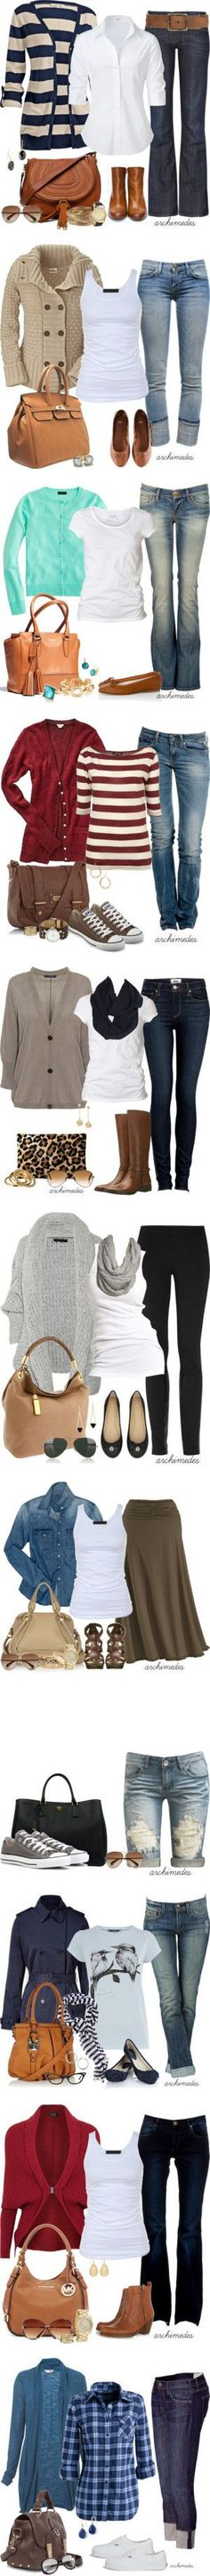 Lots of ideas - Comfy, Casual and Cute fall fashions, fall clothes, color combos, casual fall, fall outfits, casual outfits, fall styles, everyday outfits, fall wardrobe